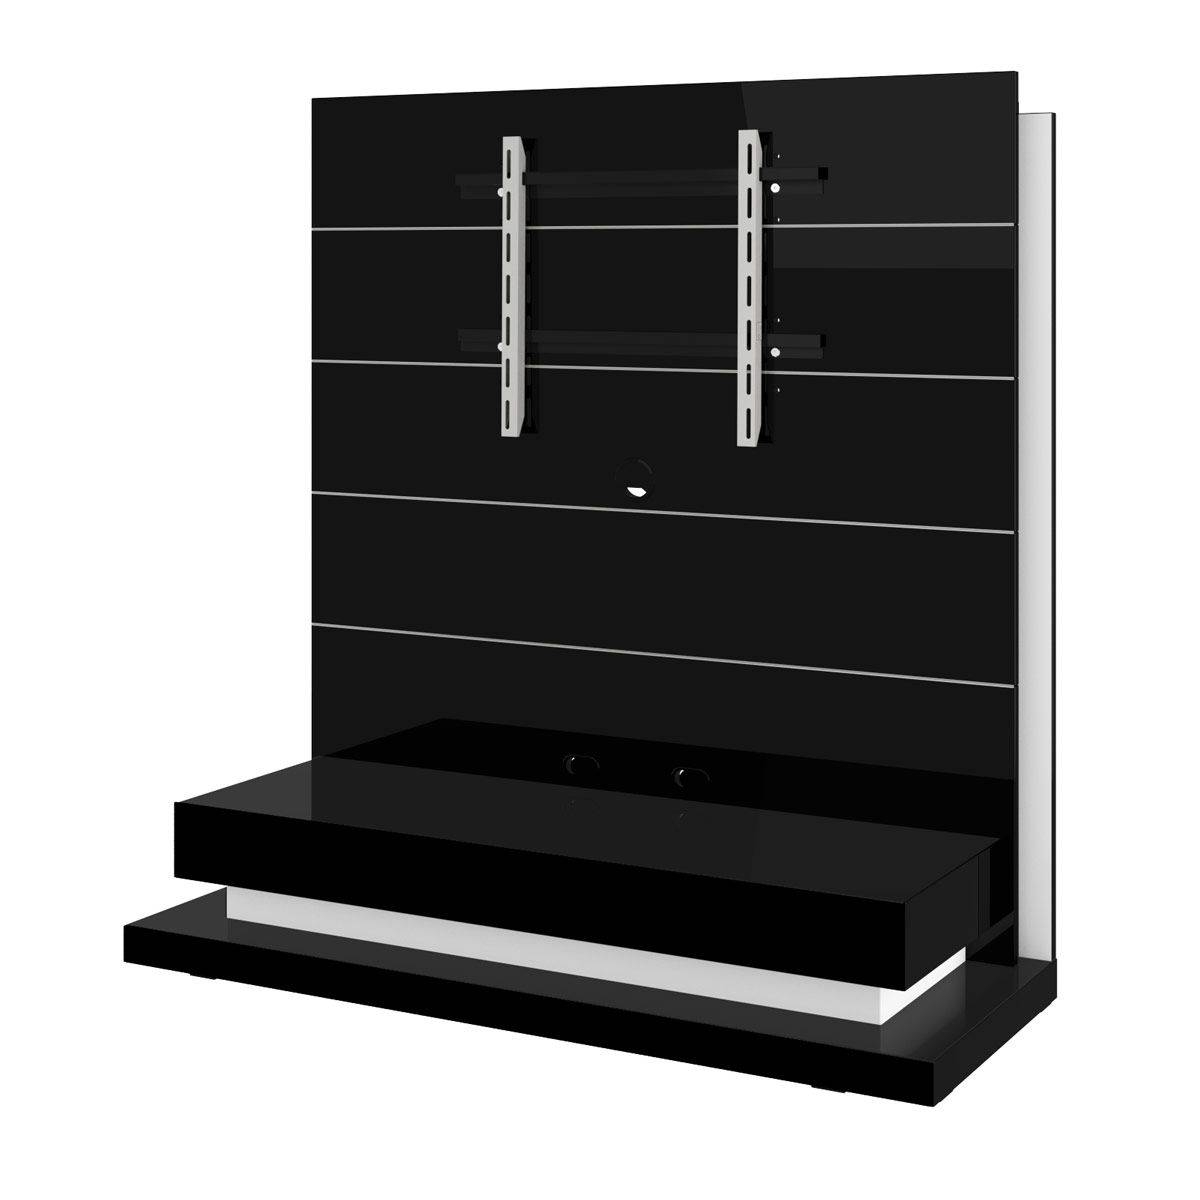 Standing Panorama Lux Black Tv Stand pertaining to Panorama Tv Stands (Image 11 of 16)